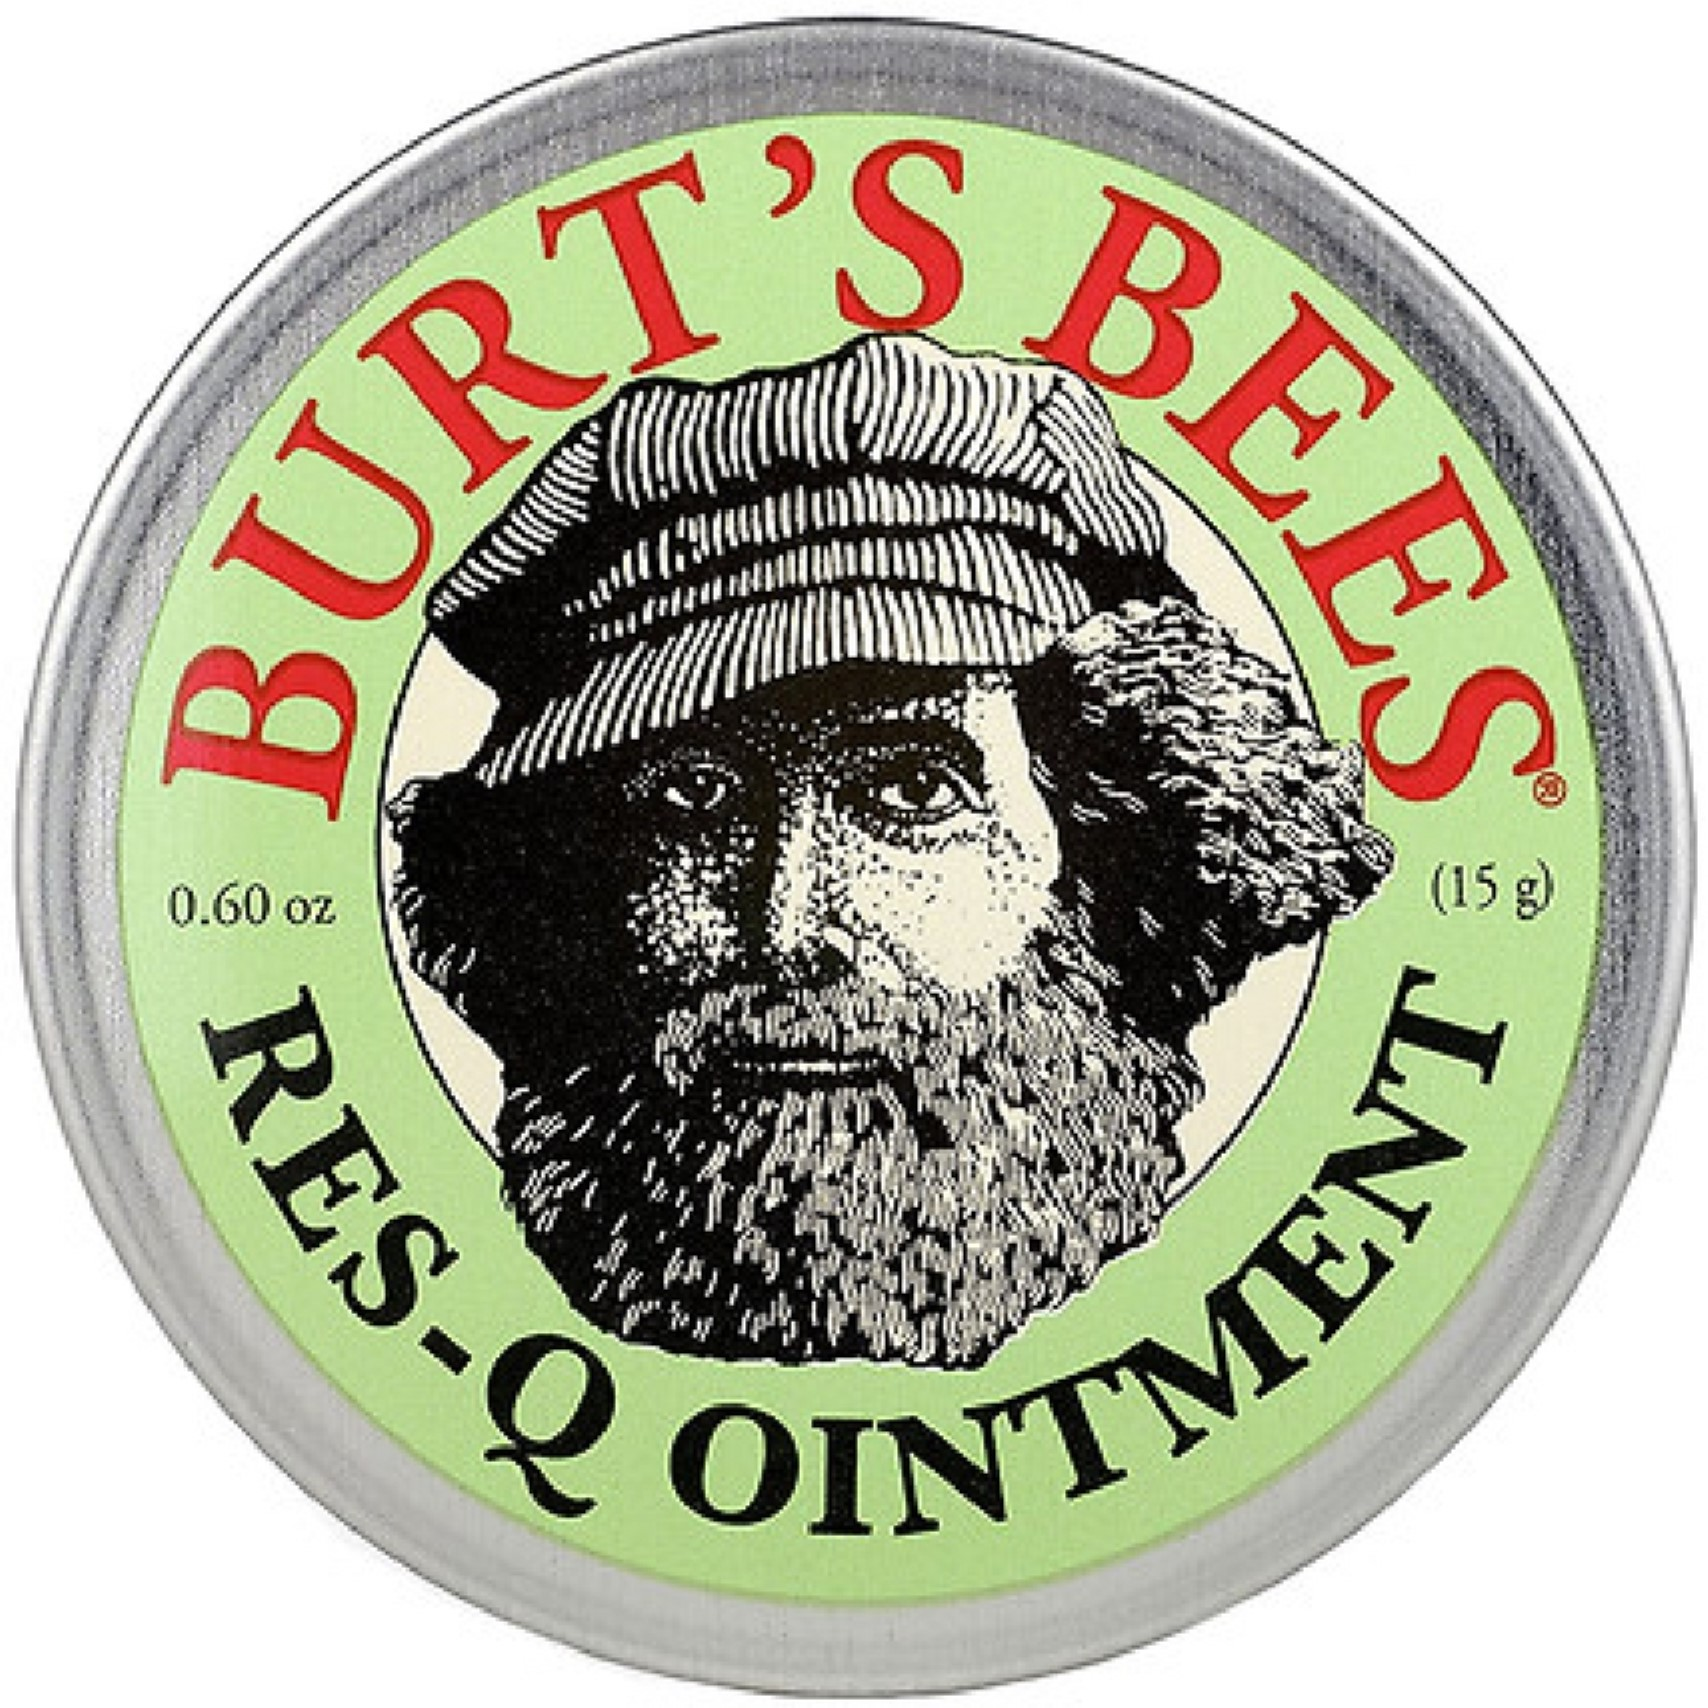 3 Pack - Burt's Bees Res-Q Ointment 0.6 oz